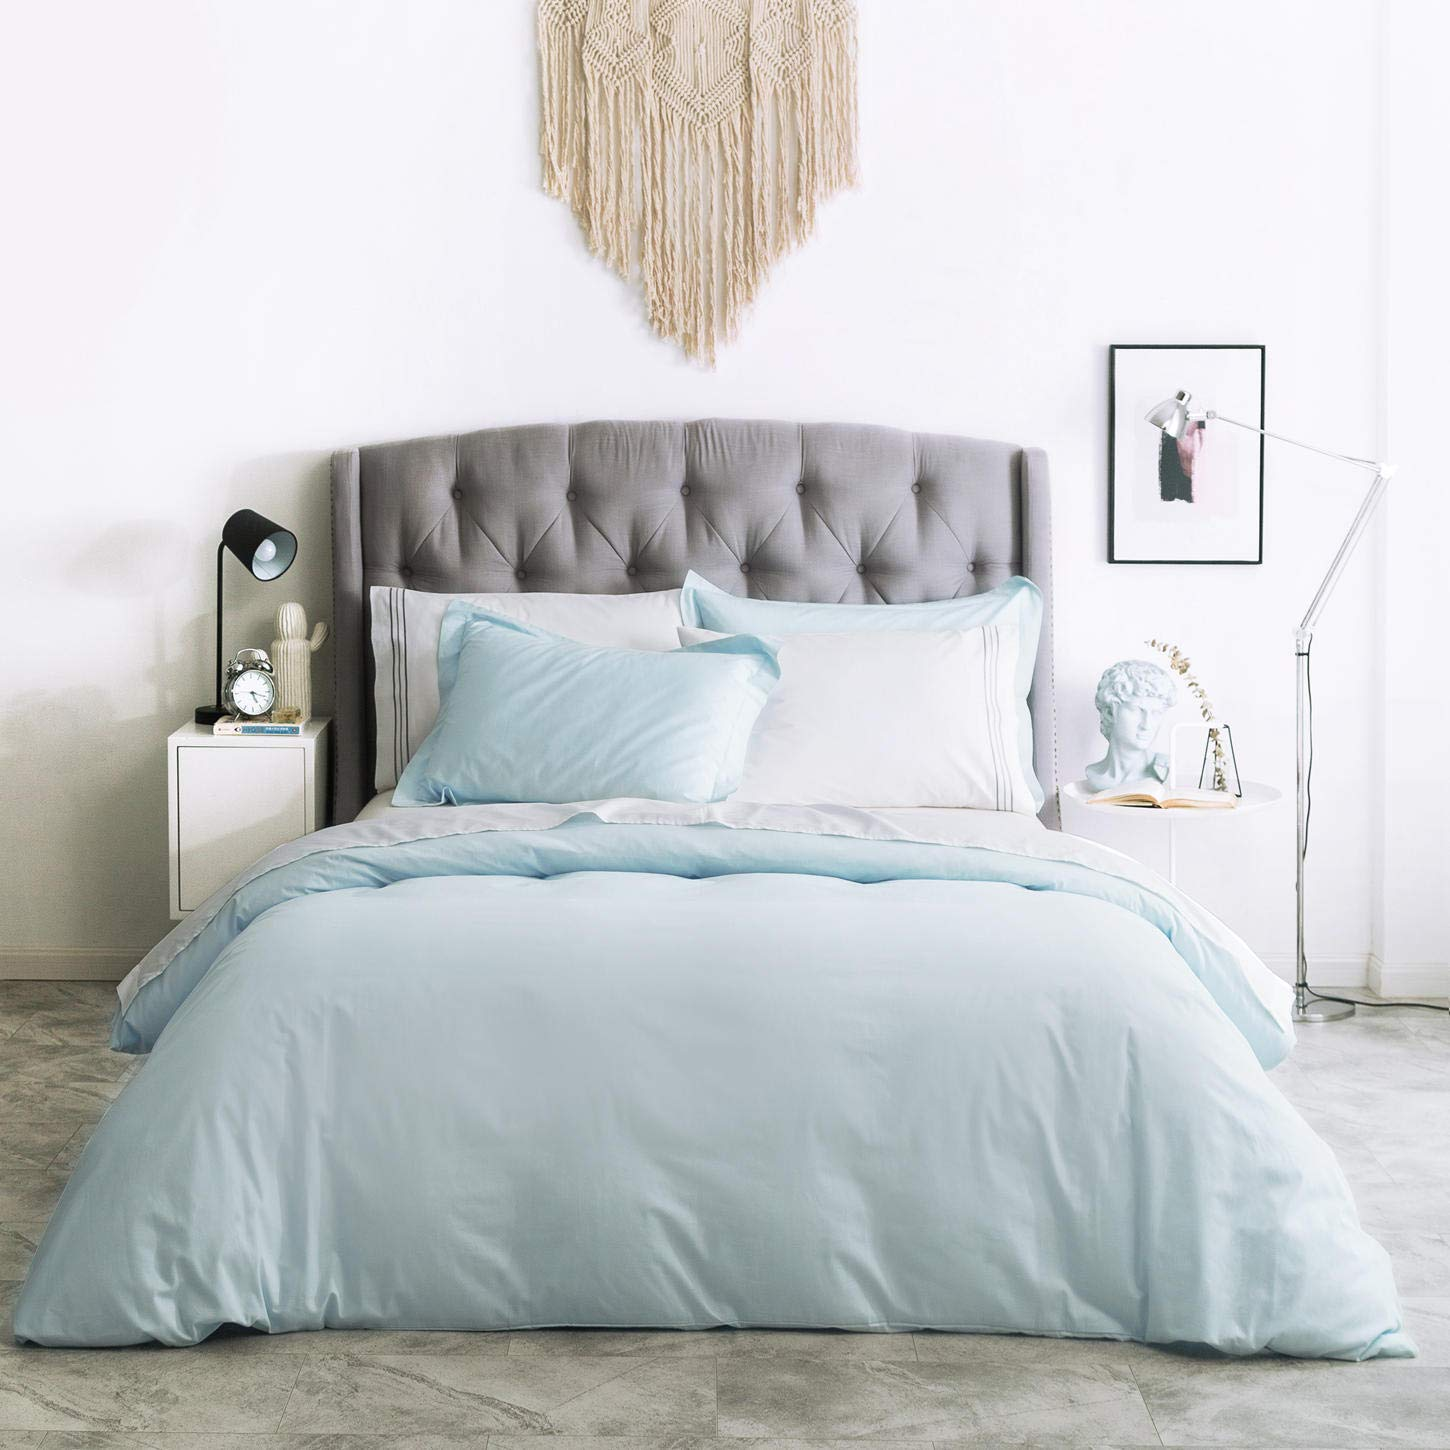 SUSYBAO 3 Pieces Duvet Cover Set 100% Natural Cotton Queen Size 1 Duvet Cover 2 Pillow Shams Powder Blue Luxury Quality Ultra Soft Breathable Lightweight Fade Resistant Solid Bedding with Zipper Ties